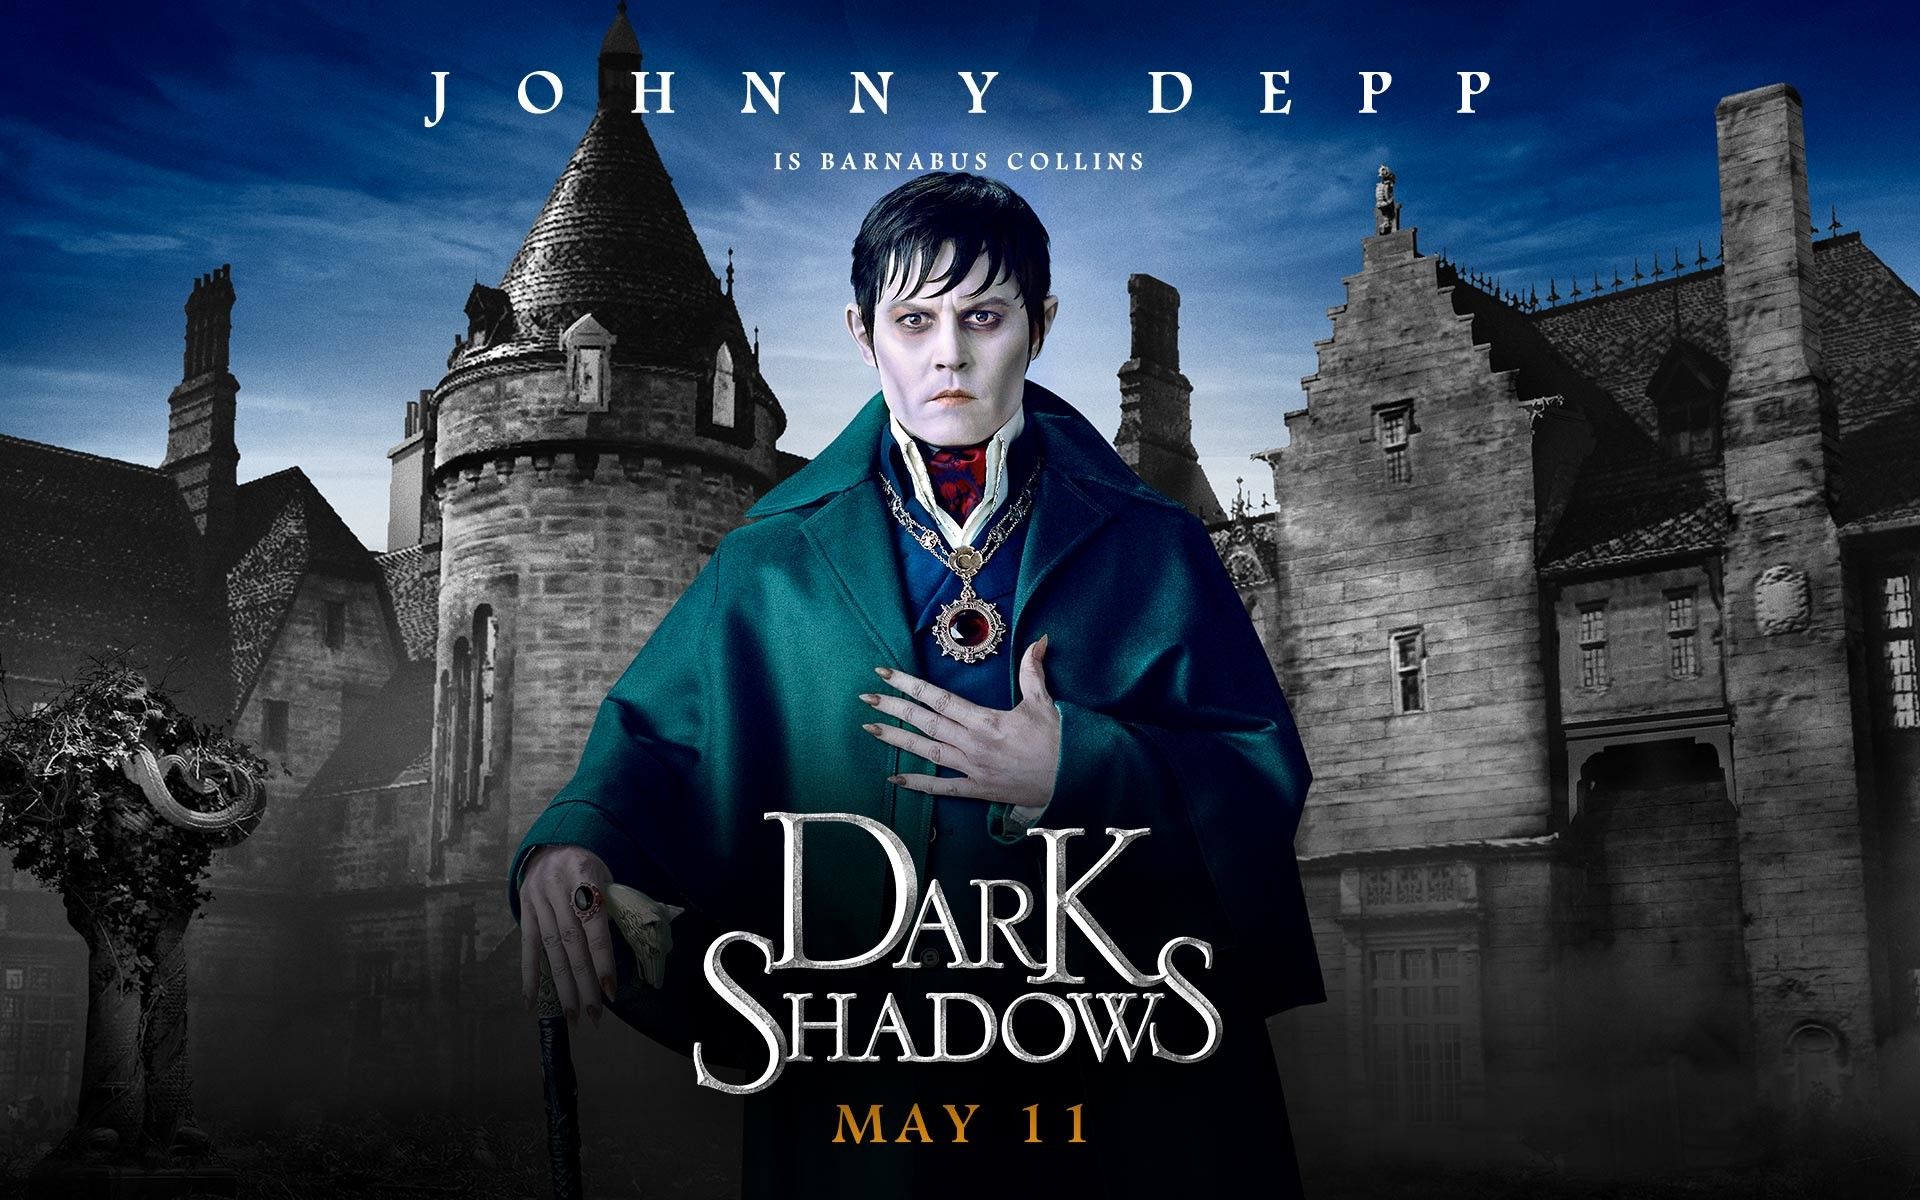 1920x1200 Dark Shadows HD Wallpaper | Hintergrund |  | ID:239207 - Wallpaper  Abyss